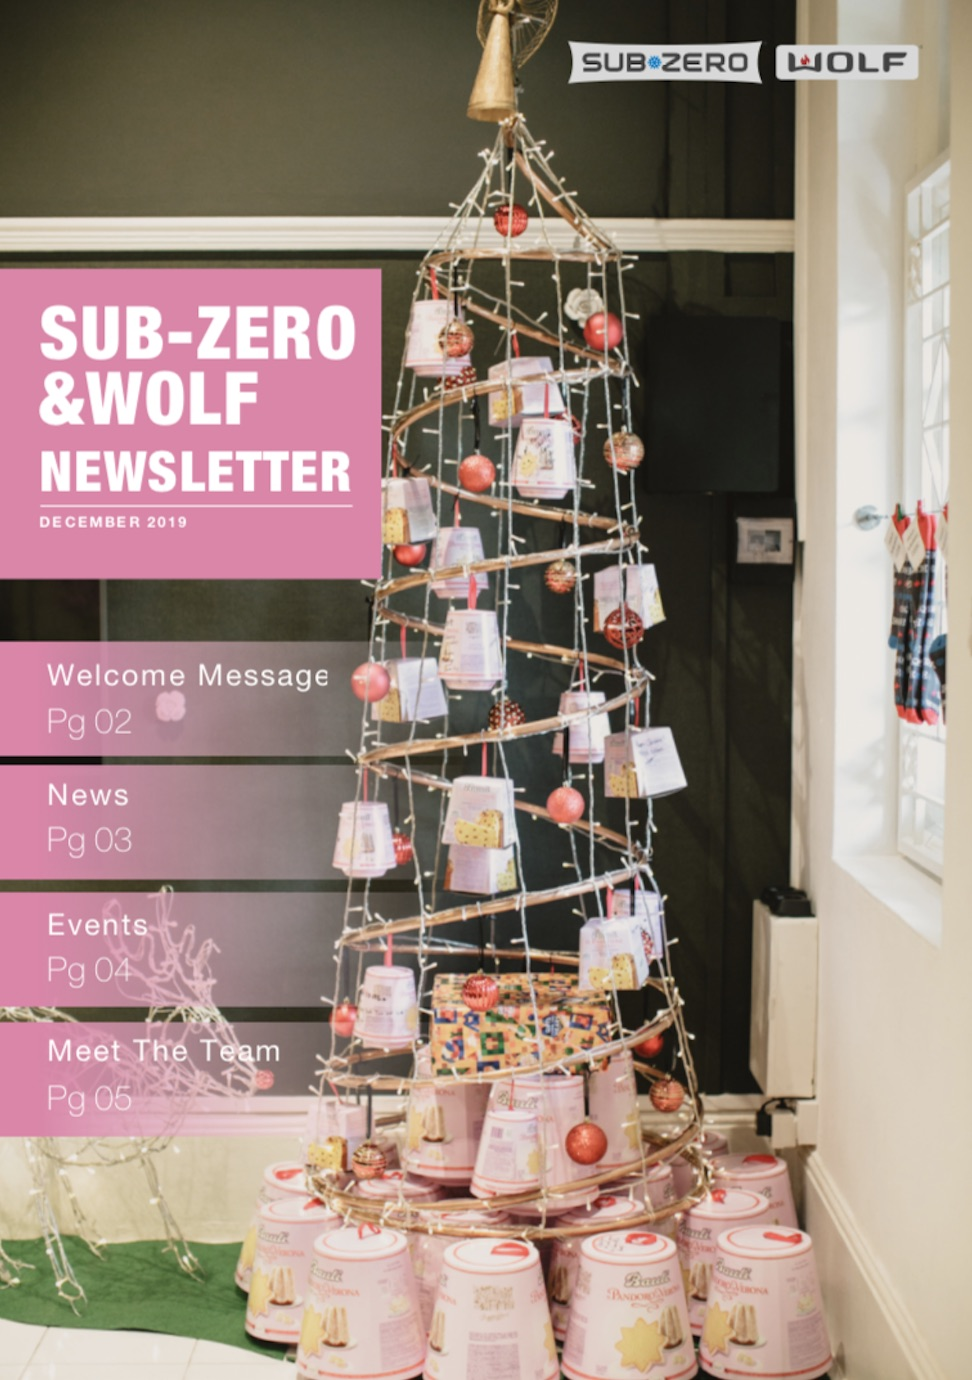 newletter szw dec 2019